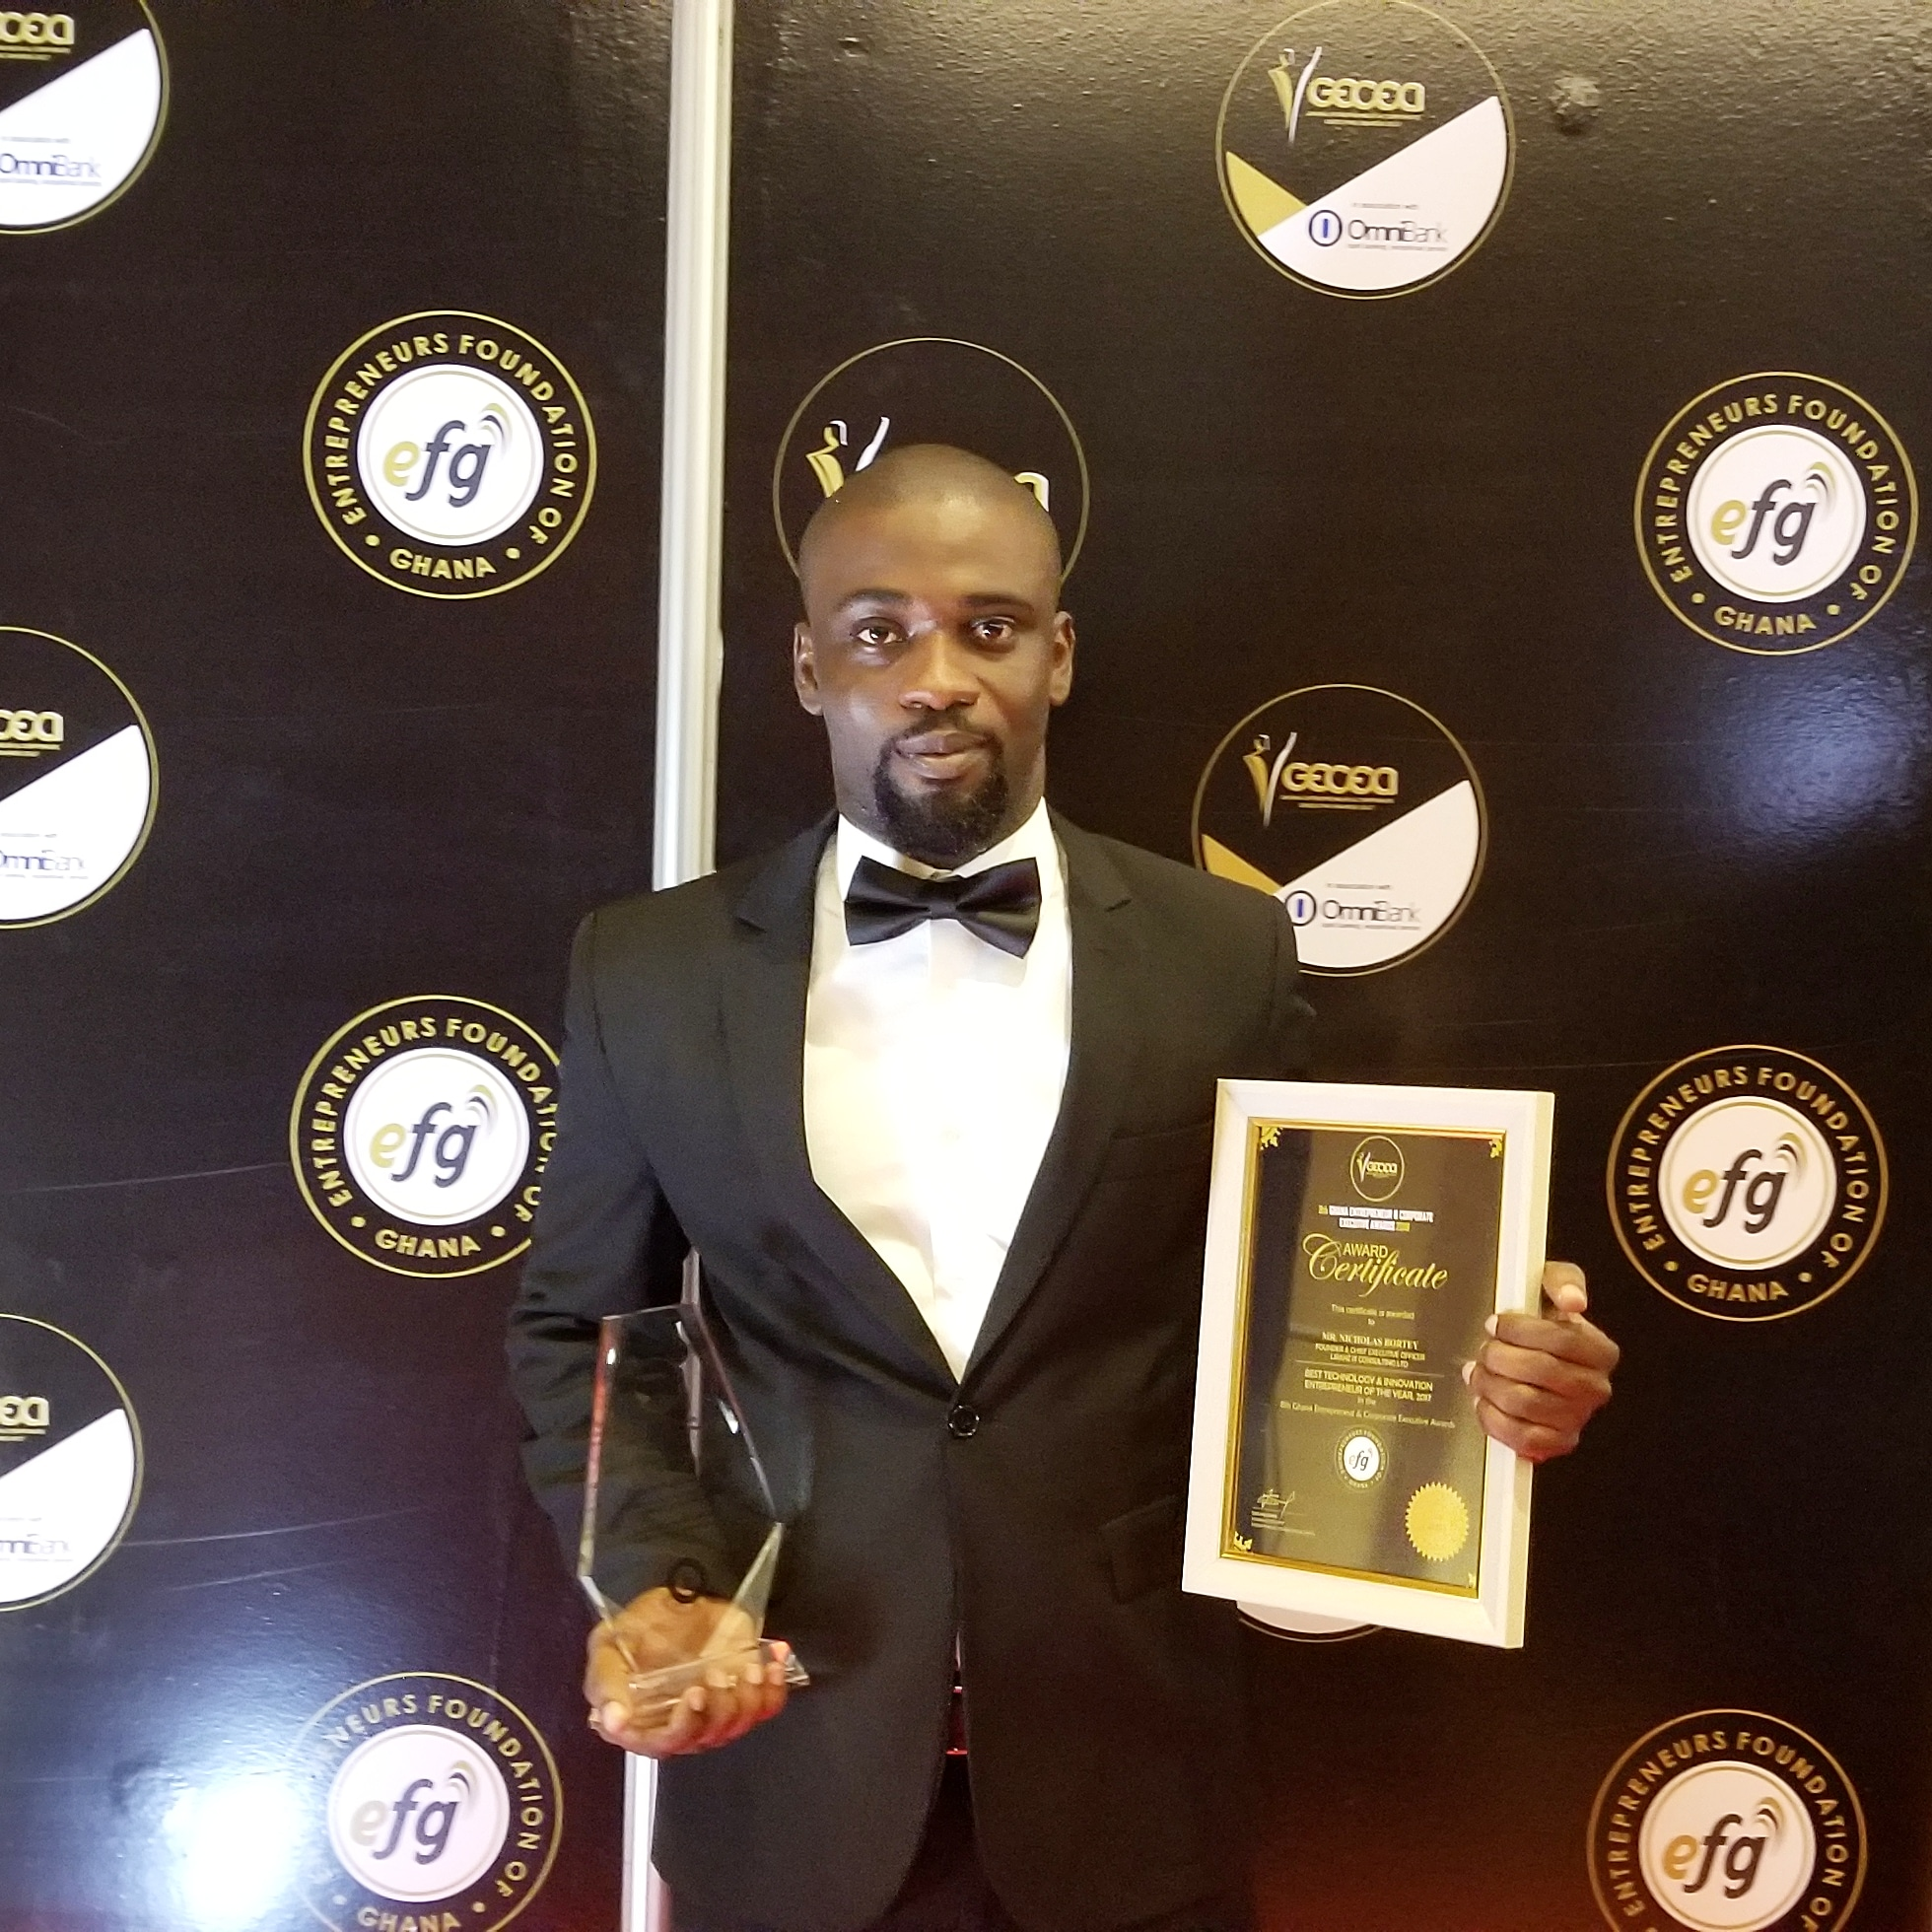 CEO of Liranz, Mr. Nicholas Bortey wins Technology & Innovation of the Year at the Ghana Entrepreneur & Corporate Executives Award 2018